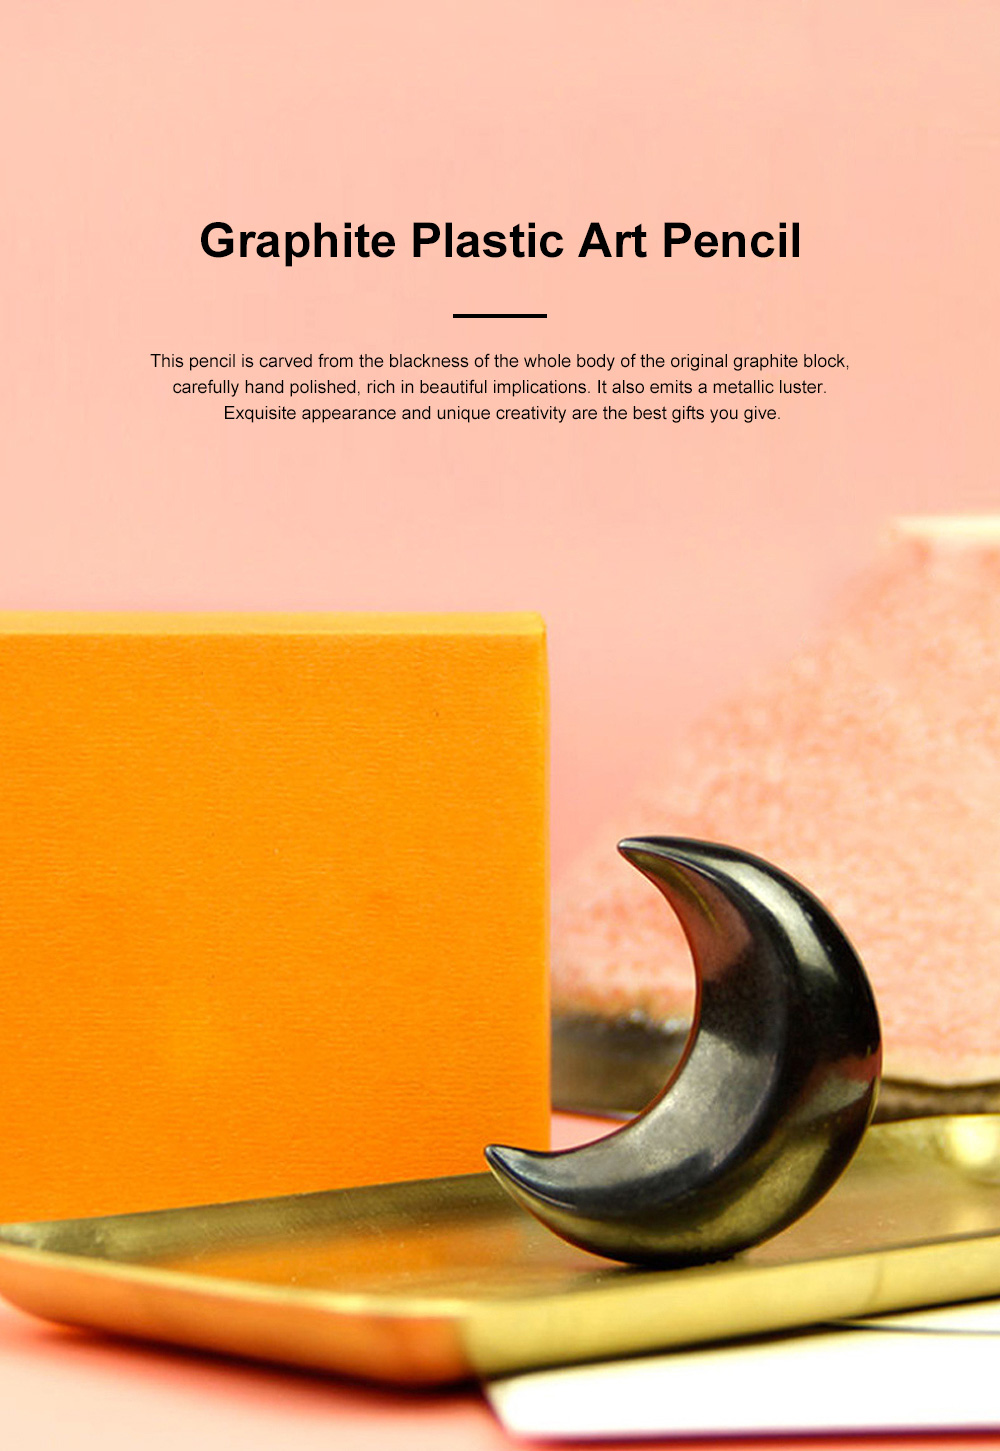 Graphite Plastic Art Pencil Marine Graphic Graphite Pencil Good Looking Decoration Pencil 0